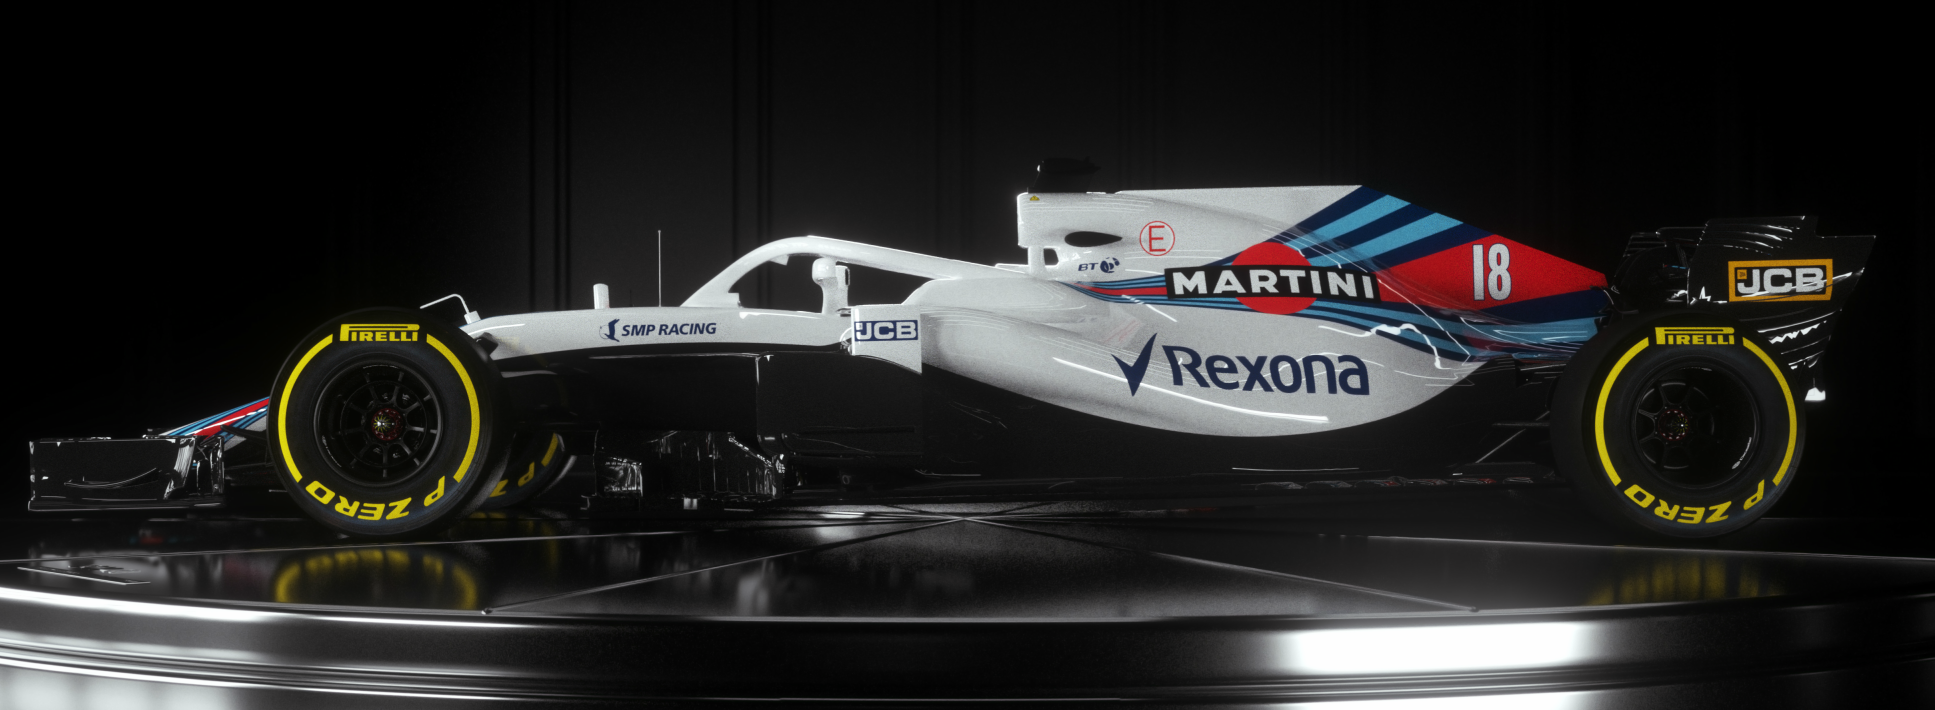 fw41sidejpegbanner.png